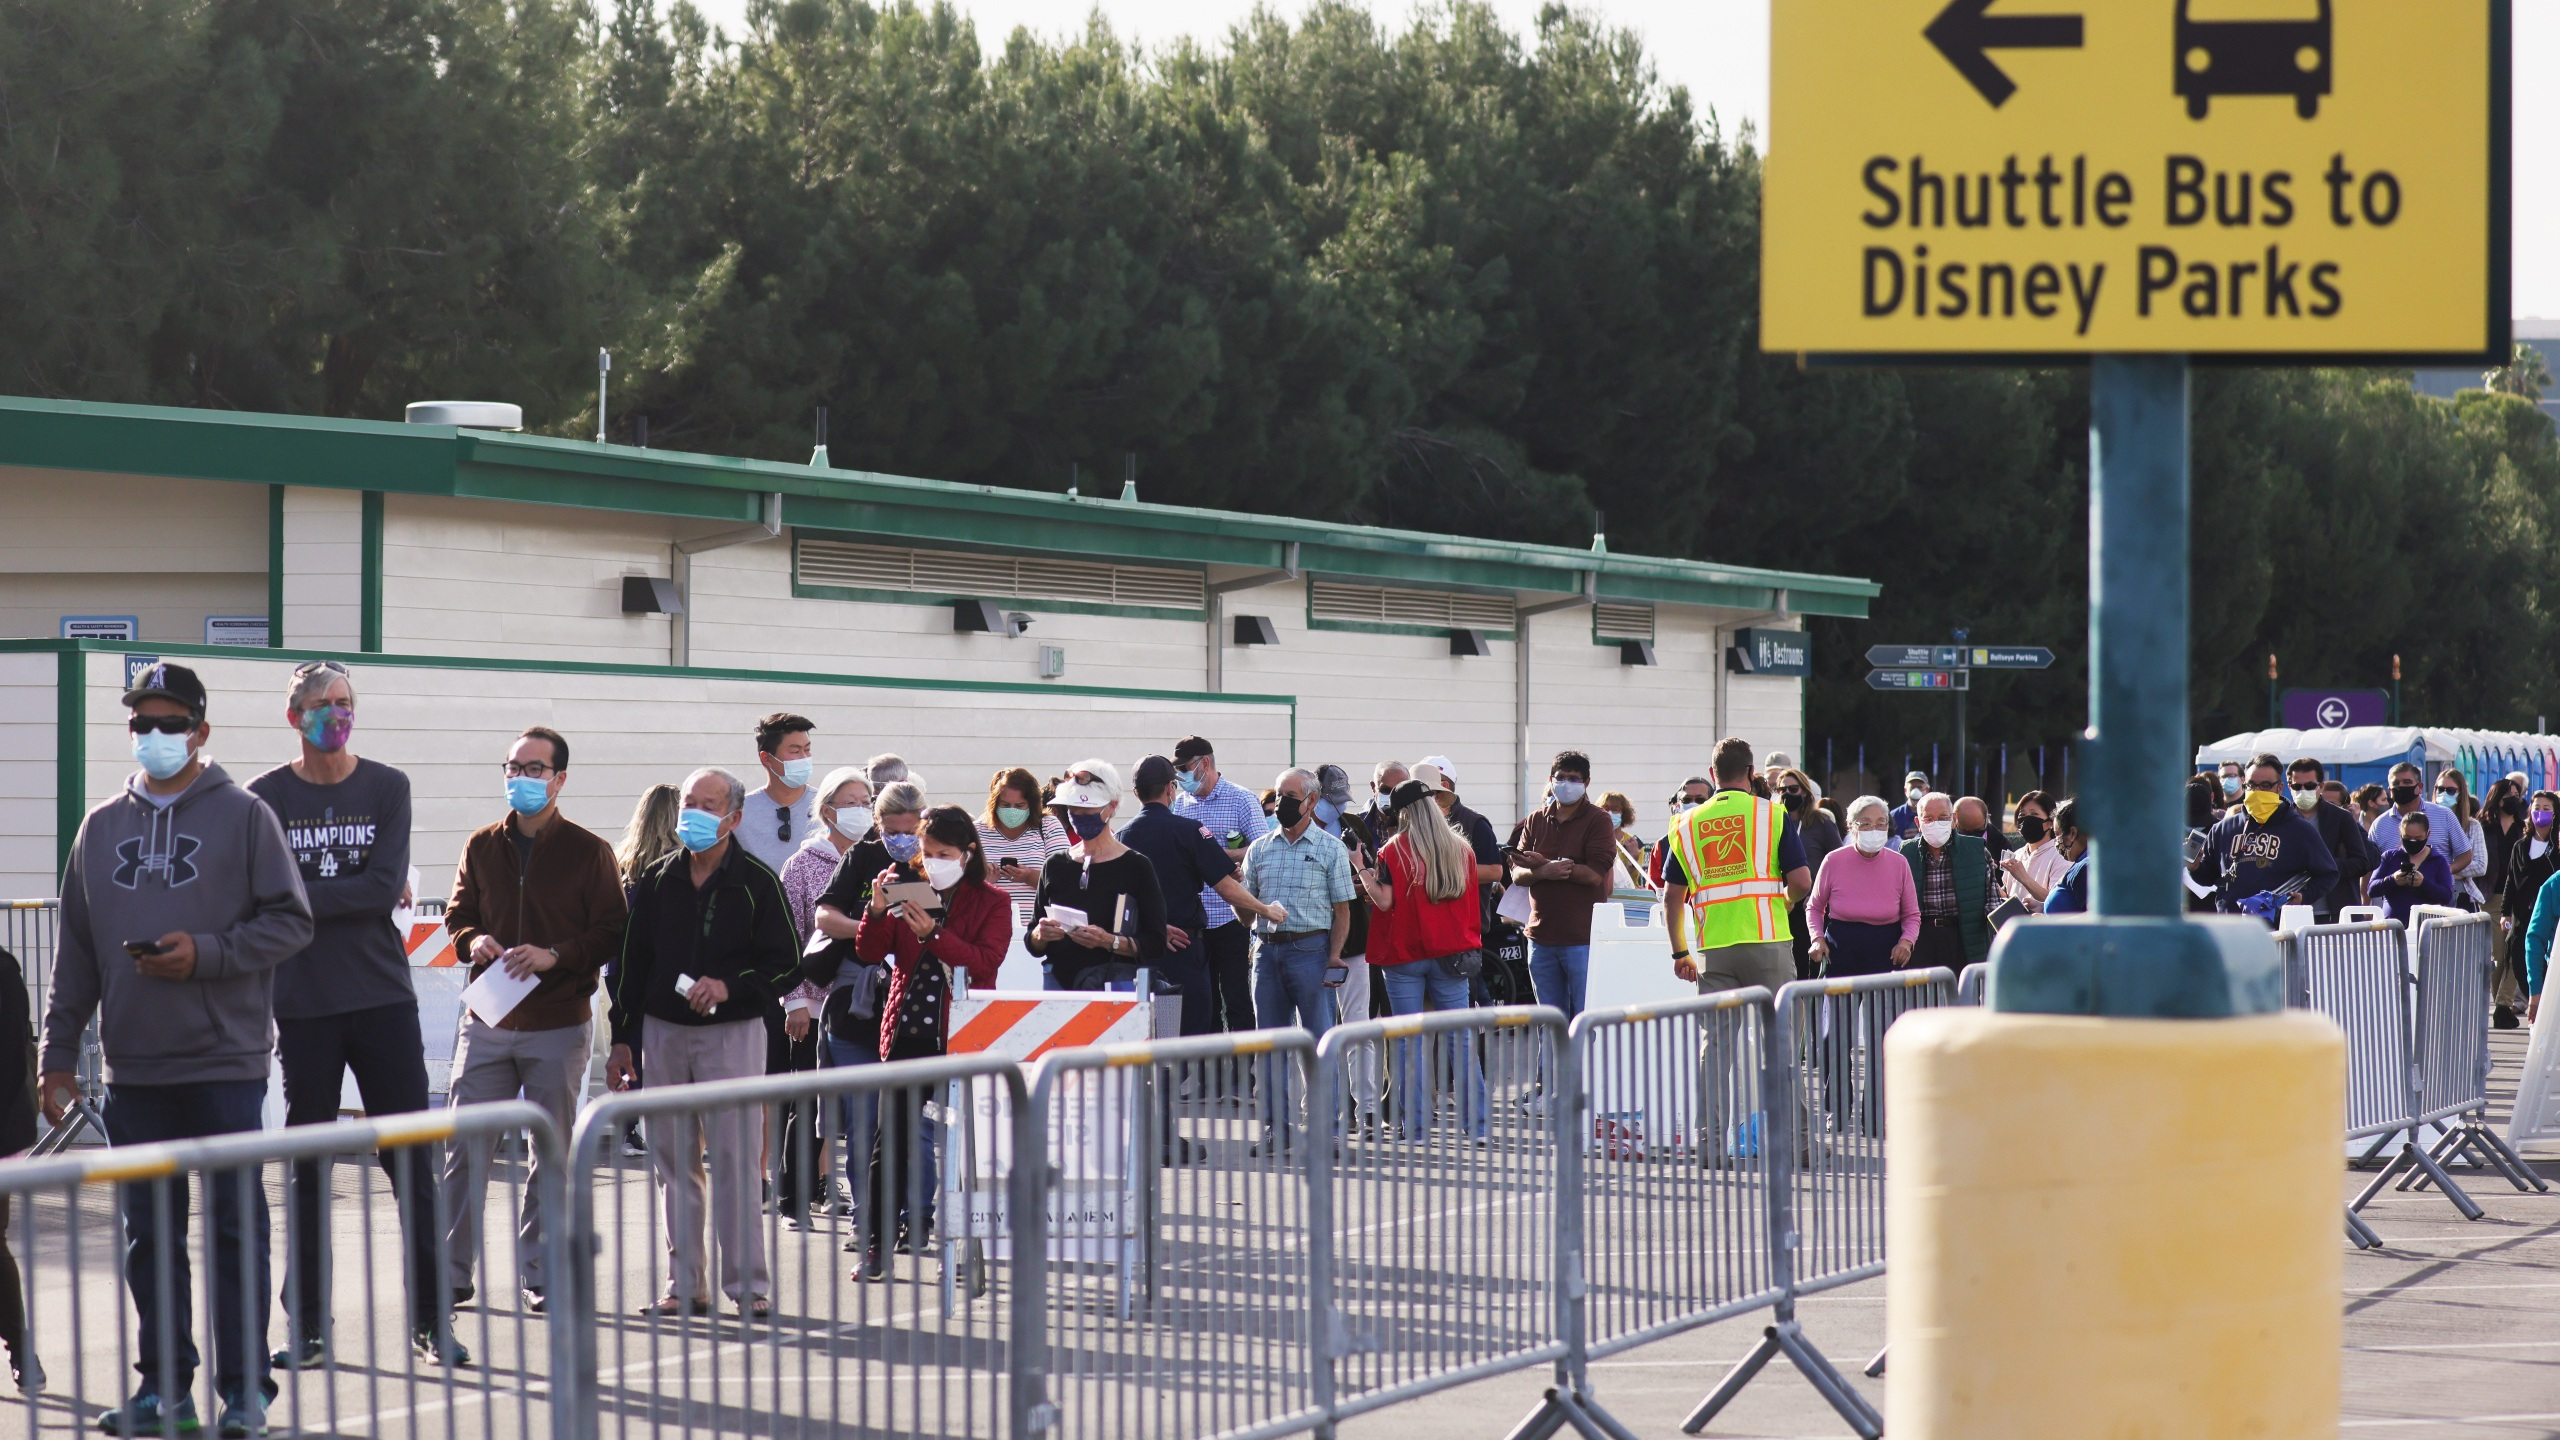 People wait in line to receive the COVID-19 vaccine at a mass vaccination site in a parking lot for Disneyland Resort on Jan. 13, 2021 in Anaheim. (Mario Tama/Getty Images)